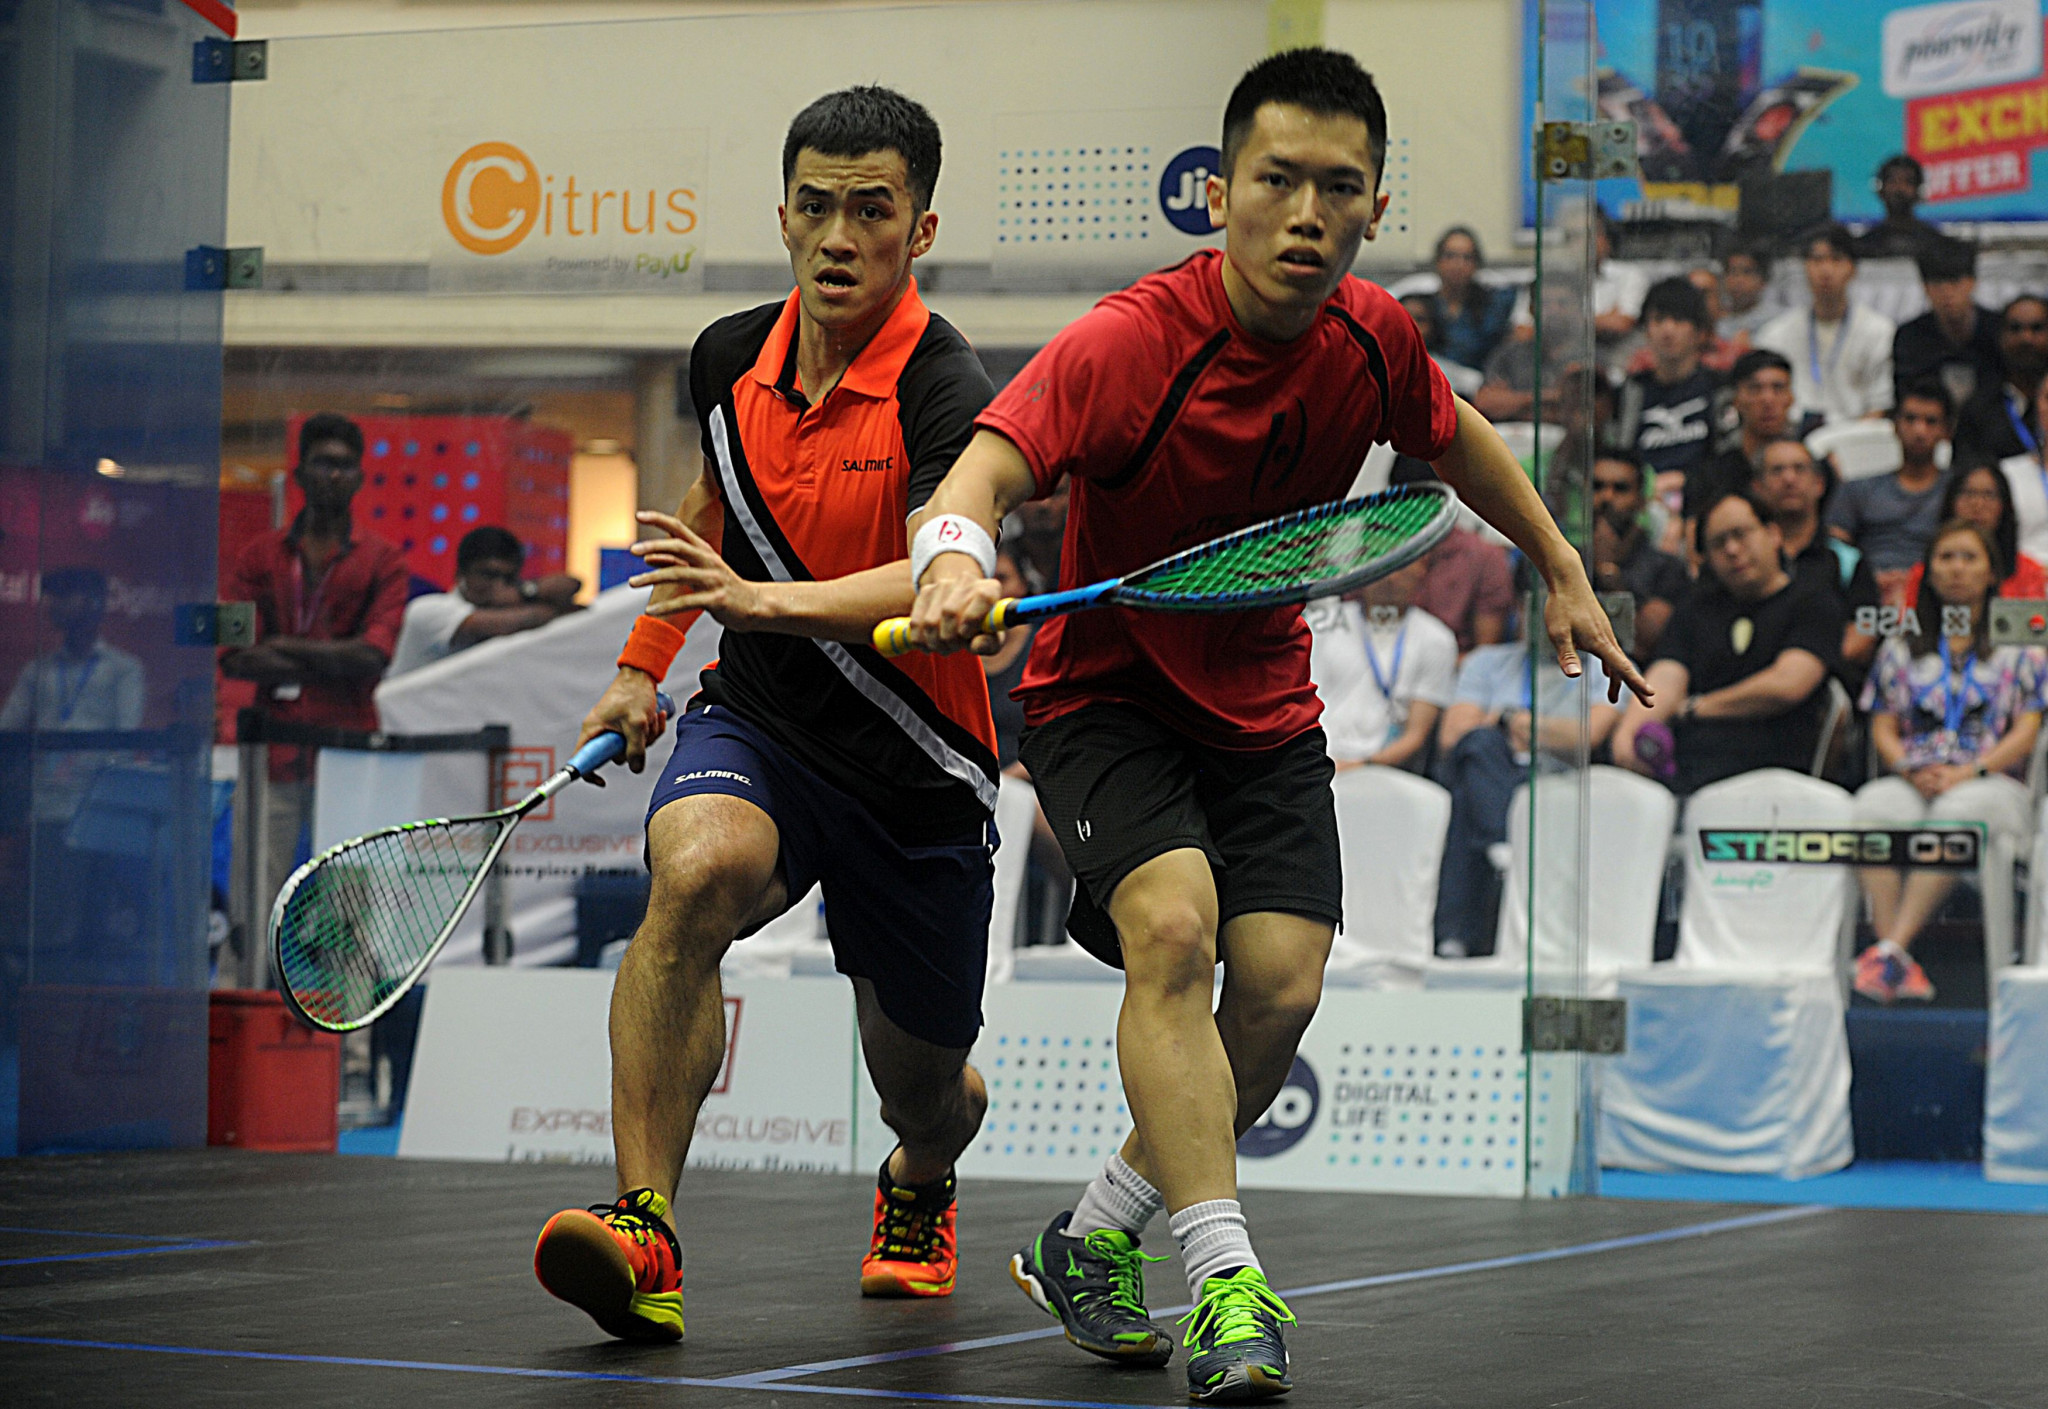 Tsz Fung Yip is the number one seed in Birmingham but will face Joshua Masters, the number two seed in the final ©FISU